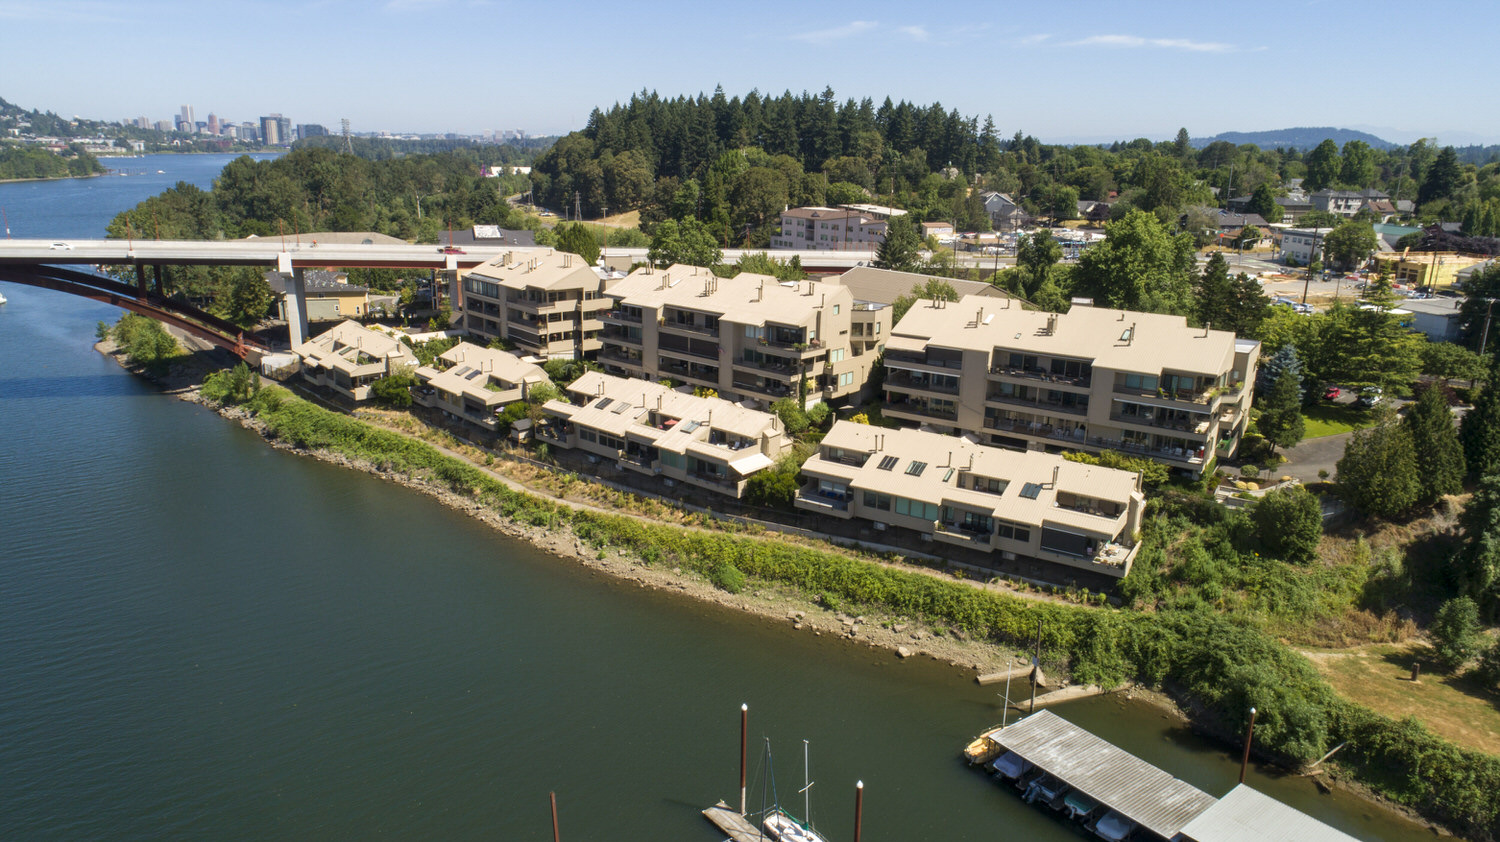 Aerial view of Sellwood Harbor condos